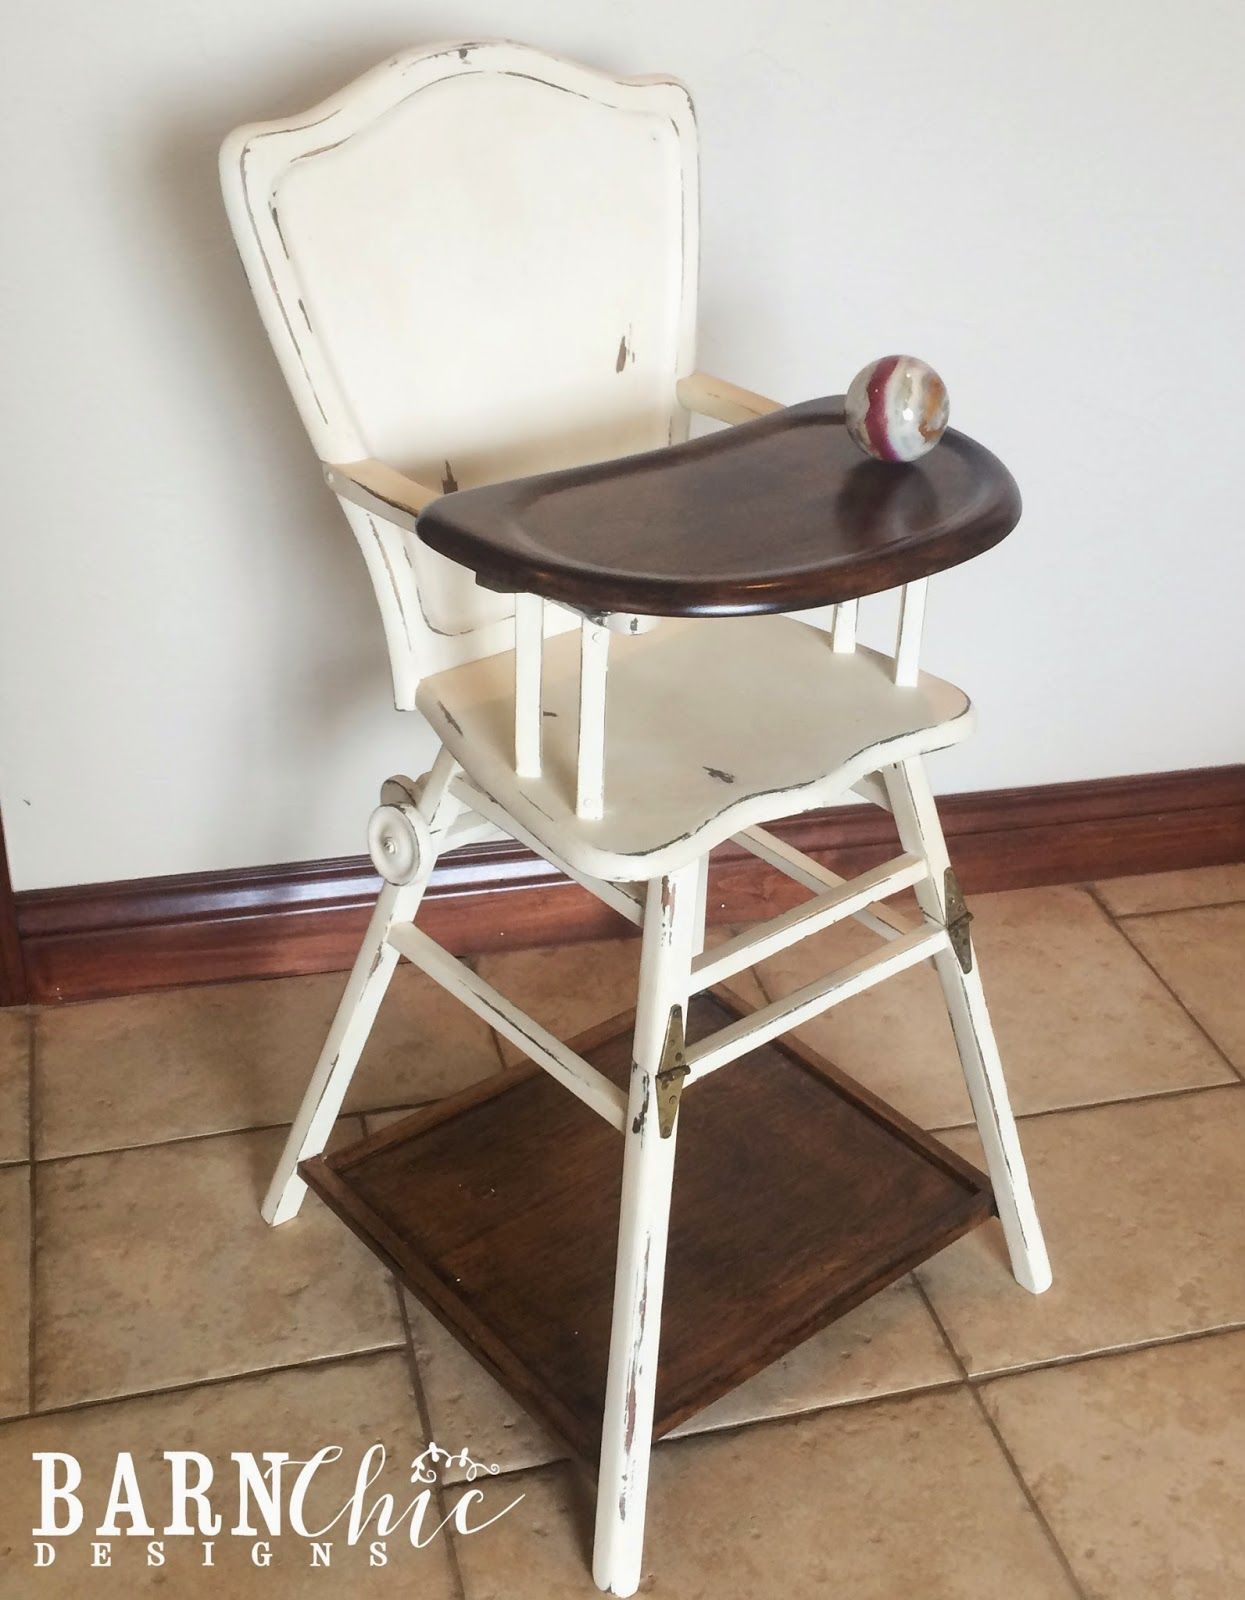 Antique high chair bentwood - Refinished Antique Old Wooden High Chair By Barn Chic Designs Two Toned Refurbished High Chair